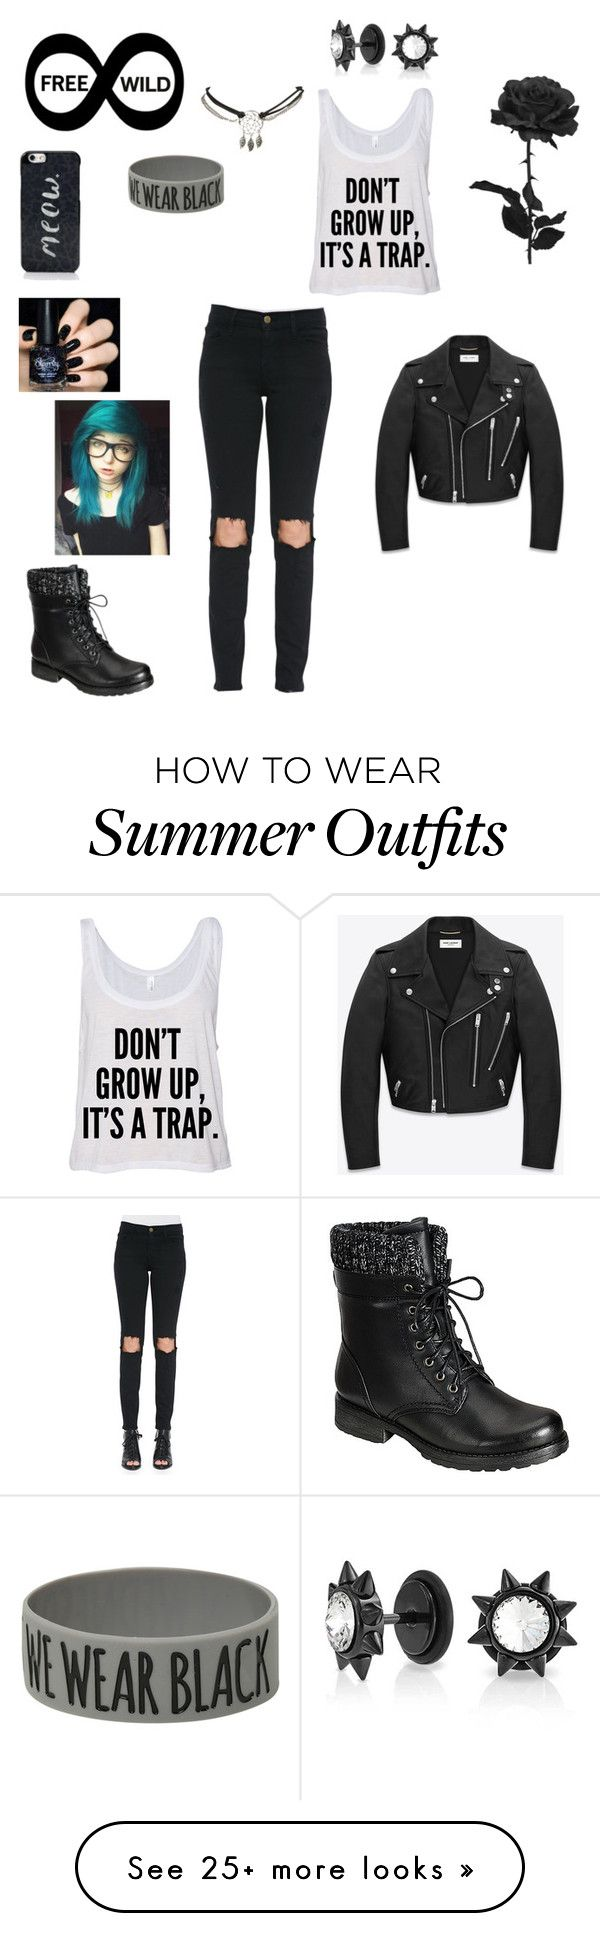 """We're the cool ones of society"" by notyouraverageblonde13 on Polyvore featuring Yves Saint Laurent, Frame Denim, Wet Seal, Bling Jewelry and Kate Spade"